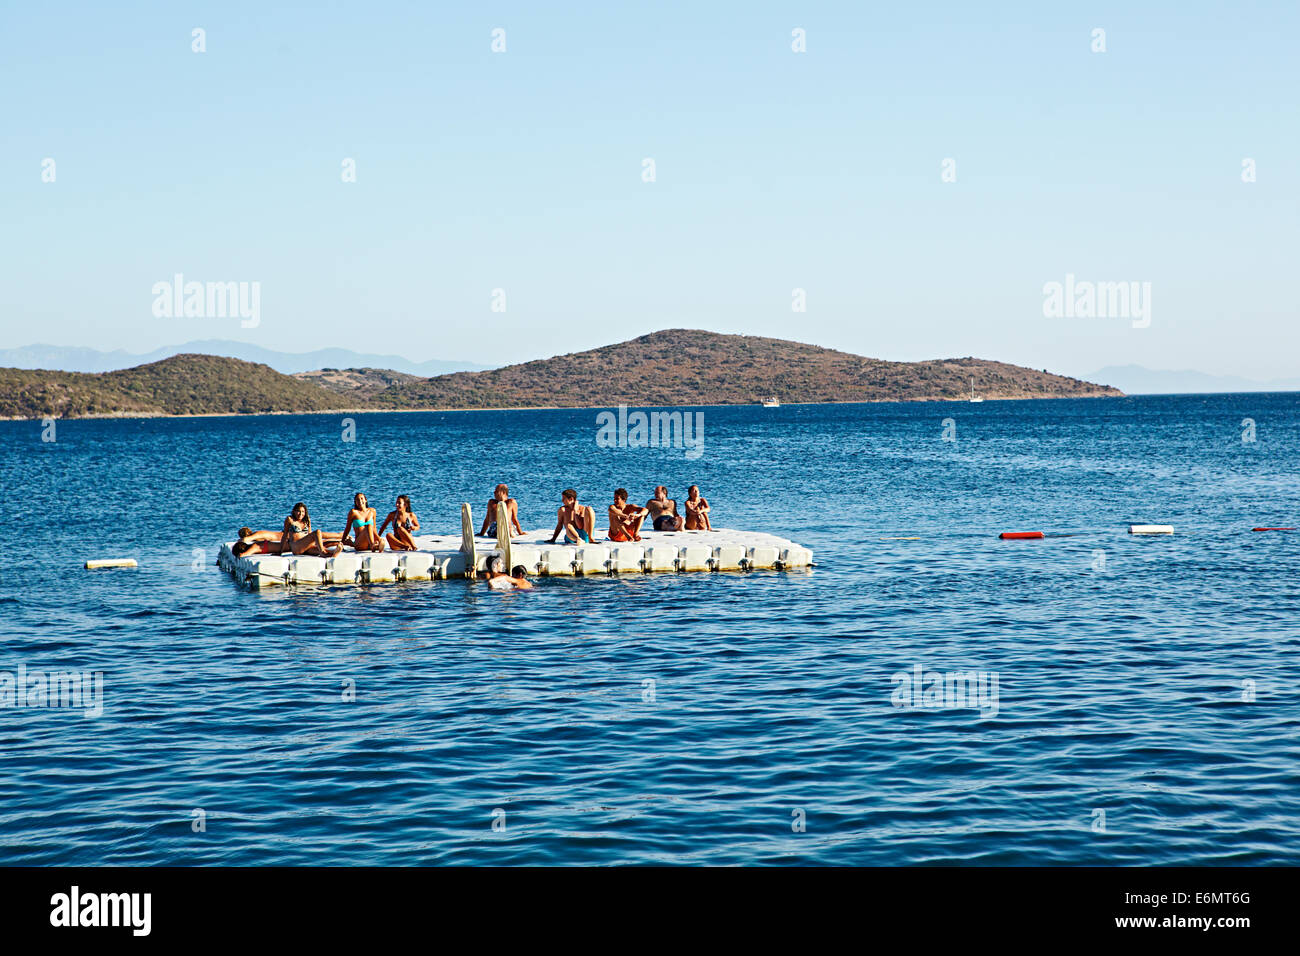 Holiday makers drifting on a raft in the clear blue see off Beyaz Beach Club, Bitez, Bodrum, Turkey - Stock Image